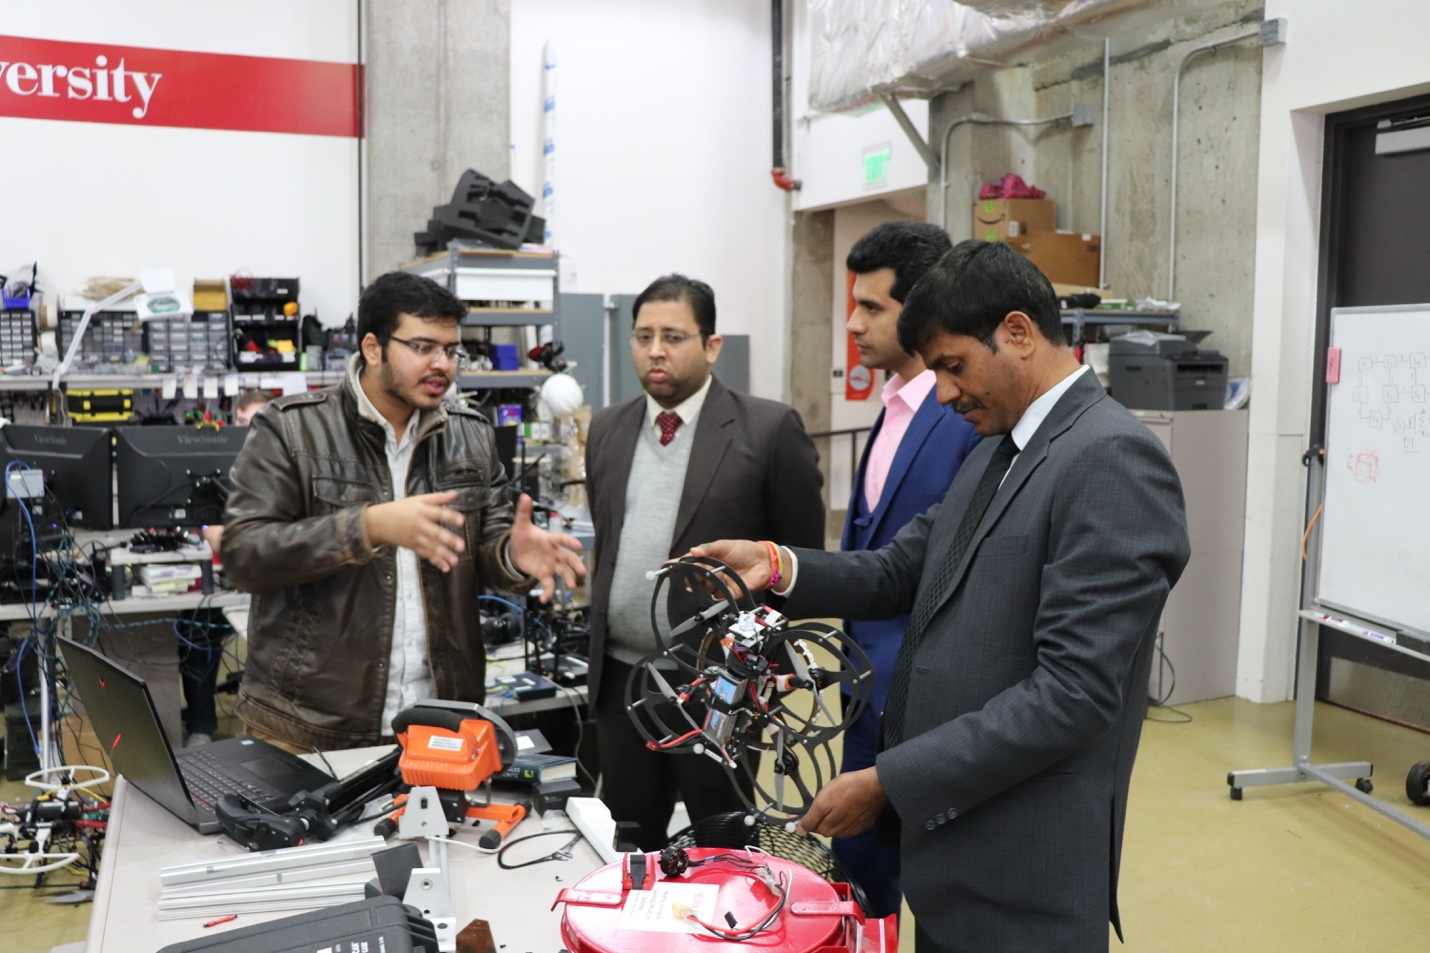 RISS alumnus Mr. Mosam Dabhi discusses aerial robotics research in Resilient Intelligent Systems Lab with the FICCI delegation.